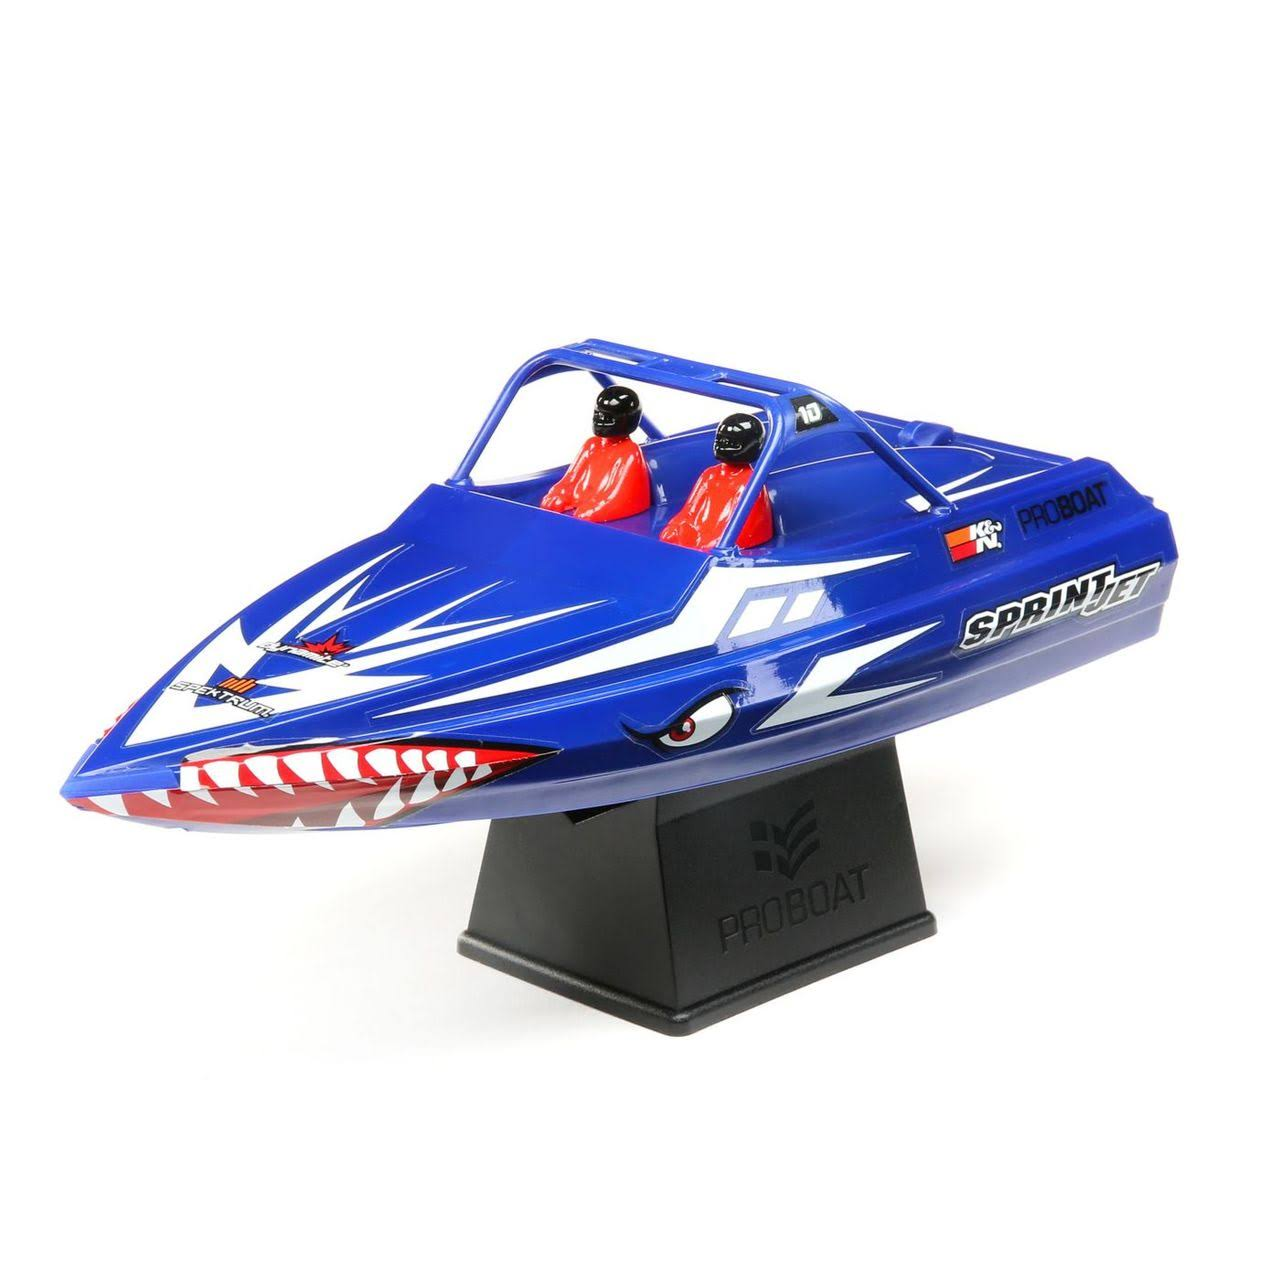 Pro Boat Jetsprint Jet Boat RC Toy - Blue